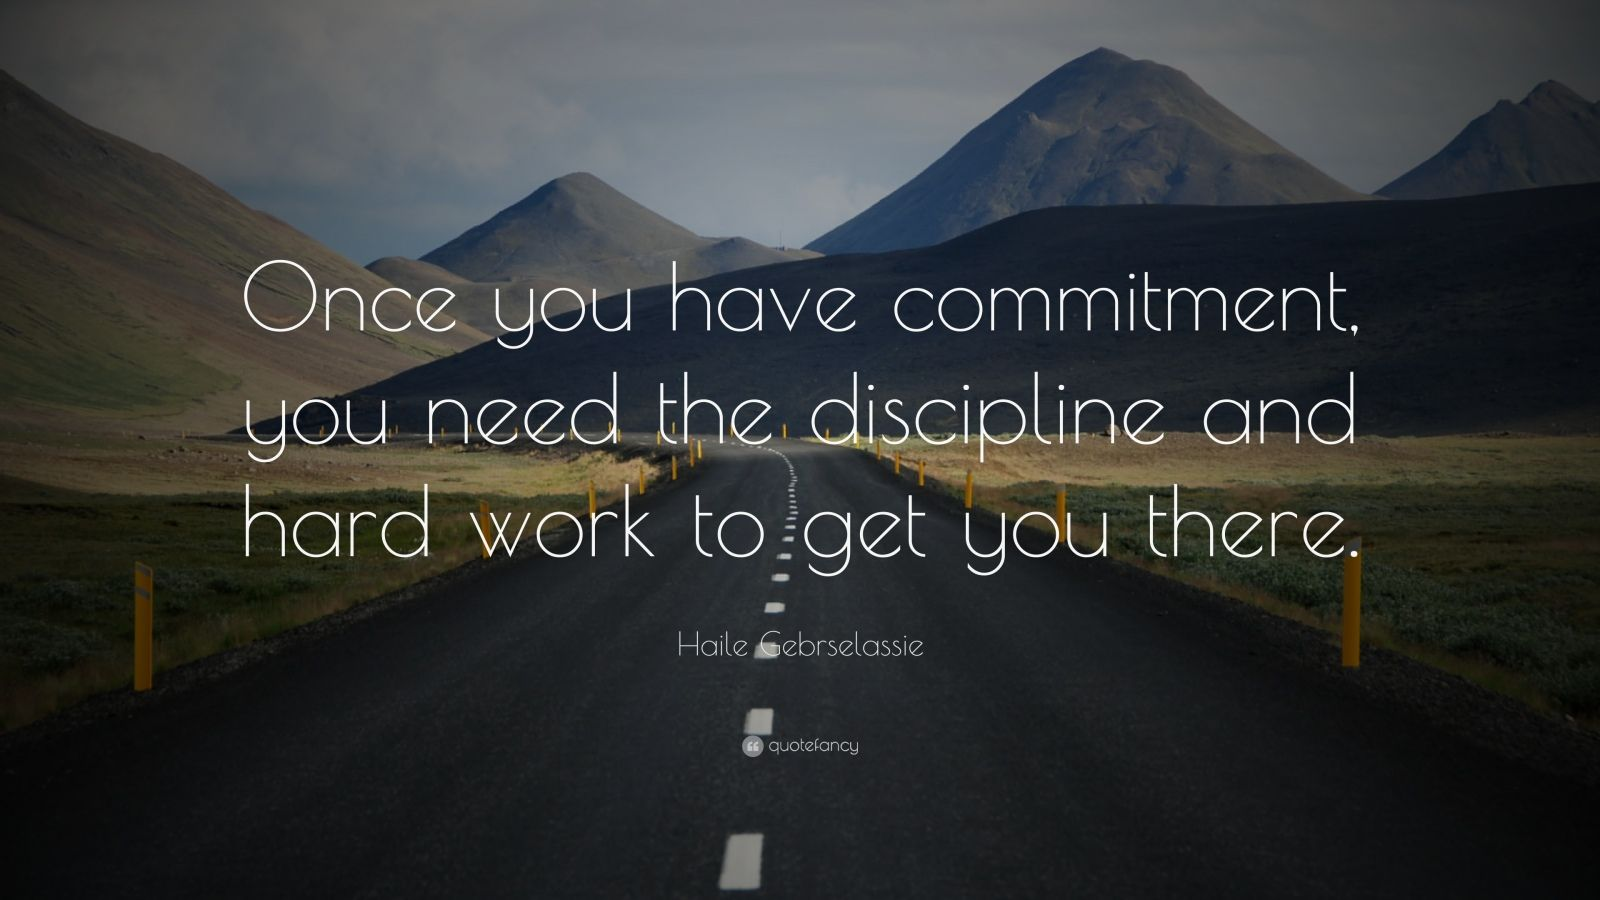 """Haile Gebrselassie Quote: """"Once you have commitment, you need the discipline and hard work to get you there."""""""